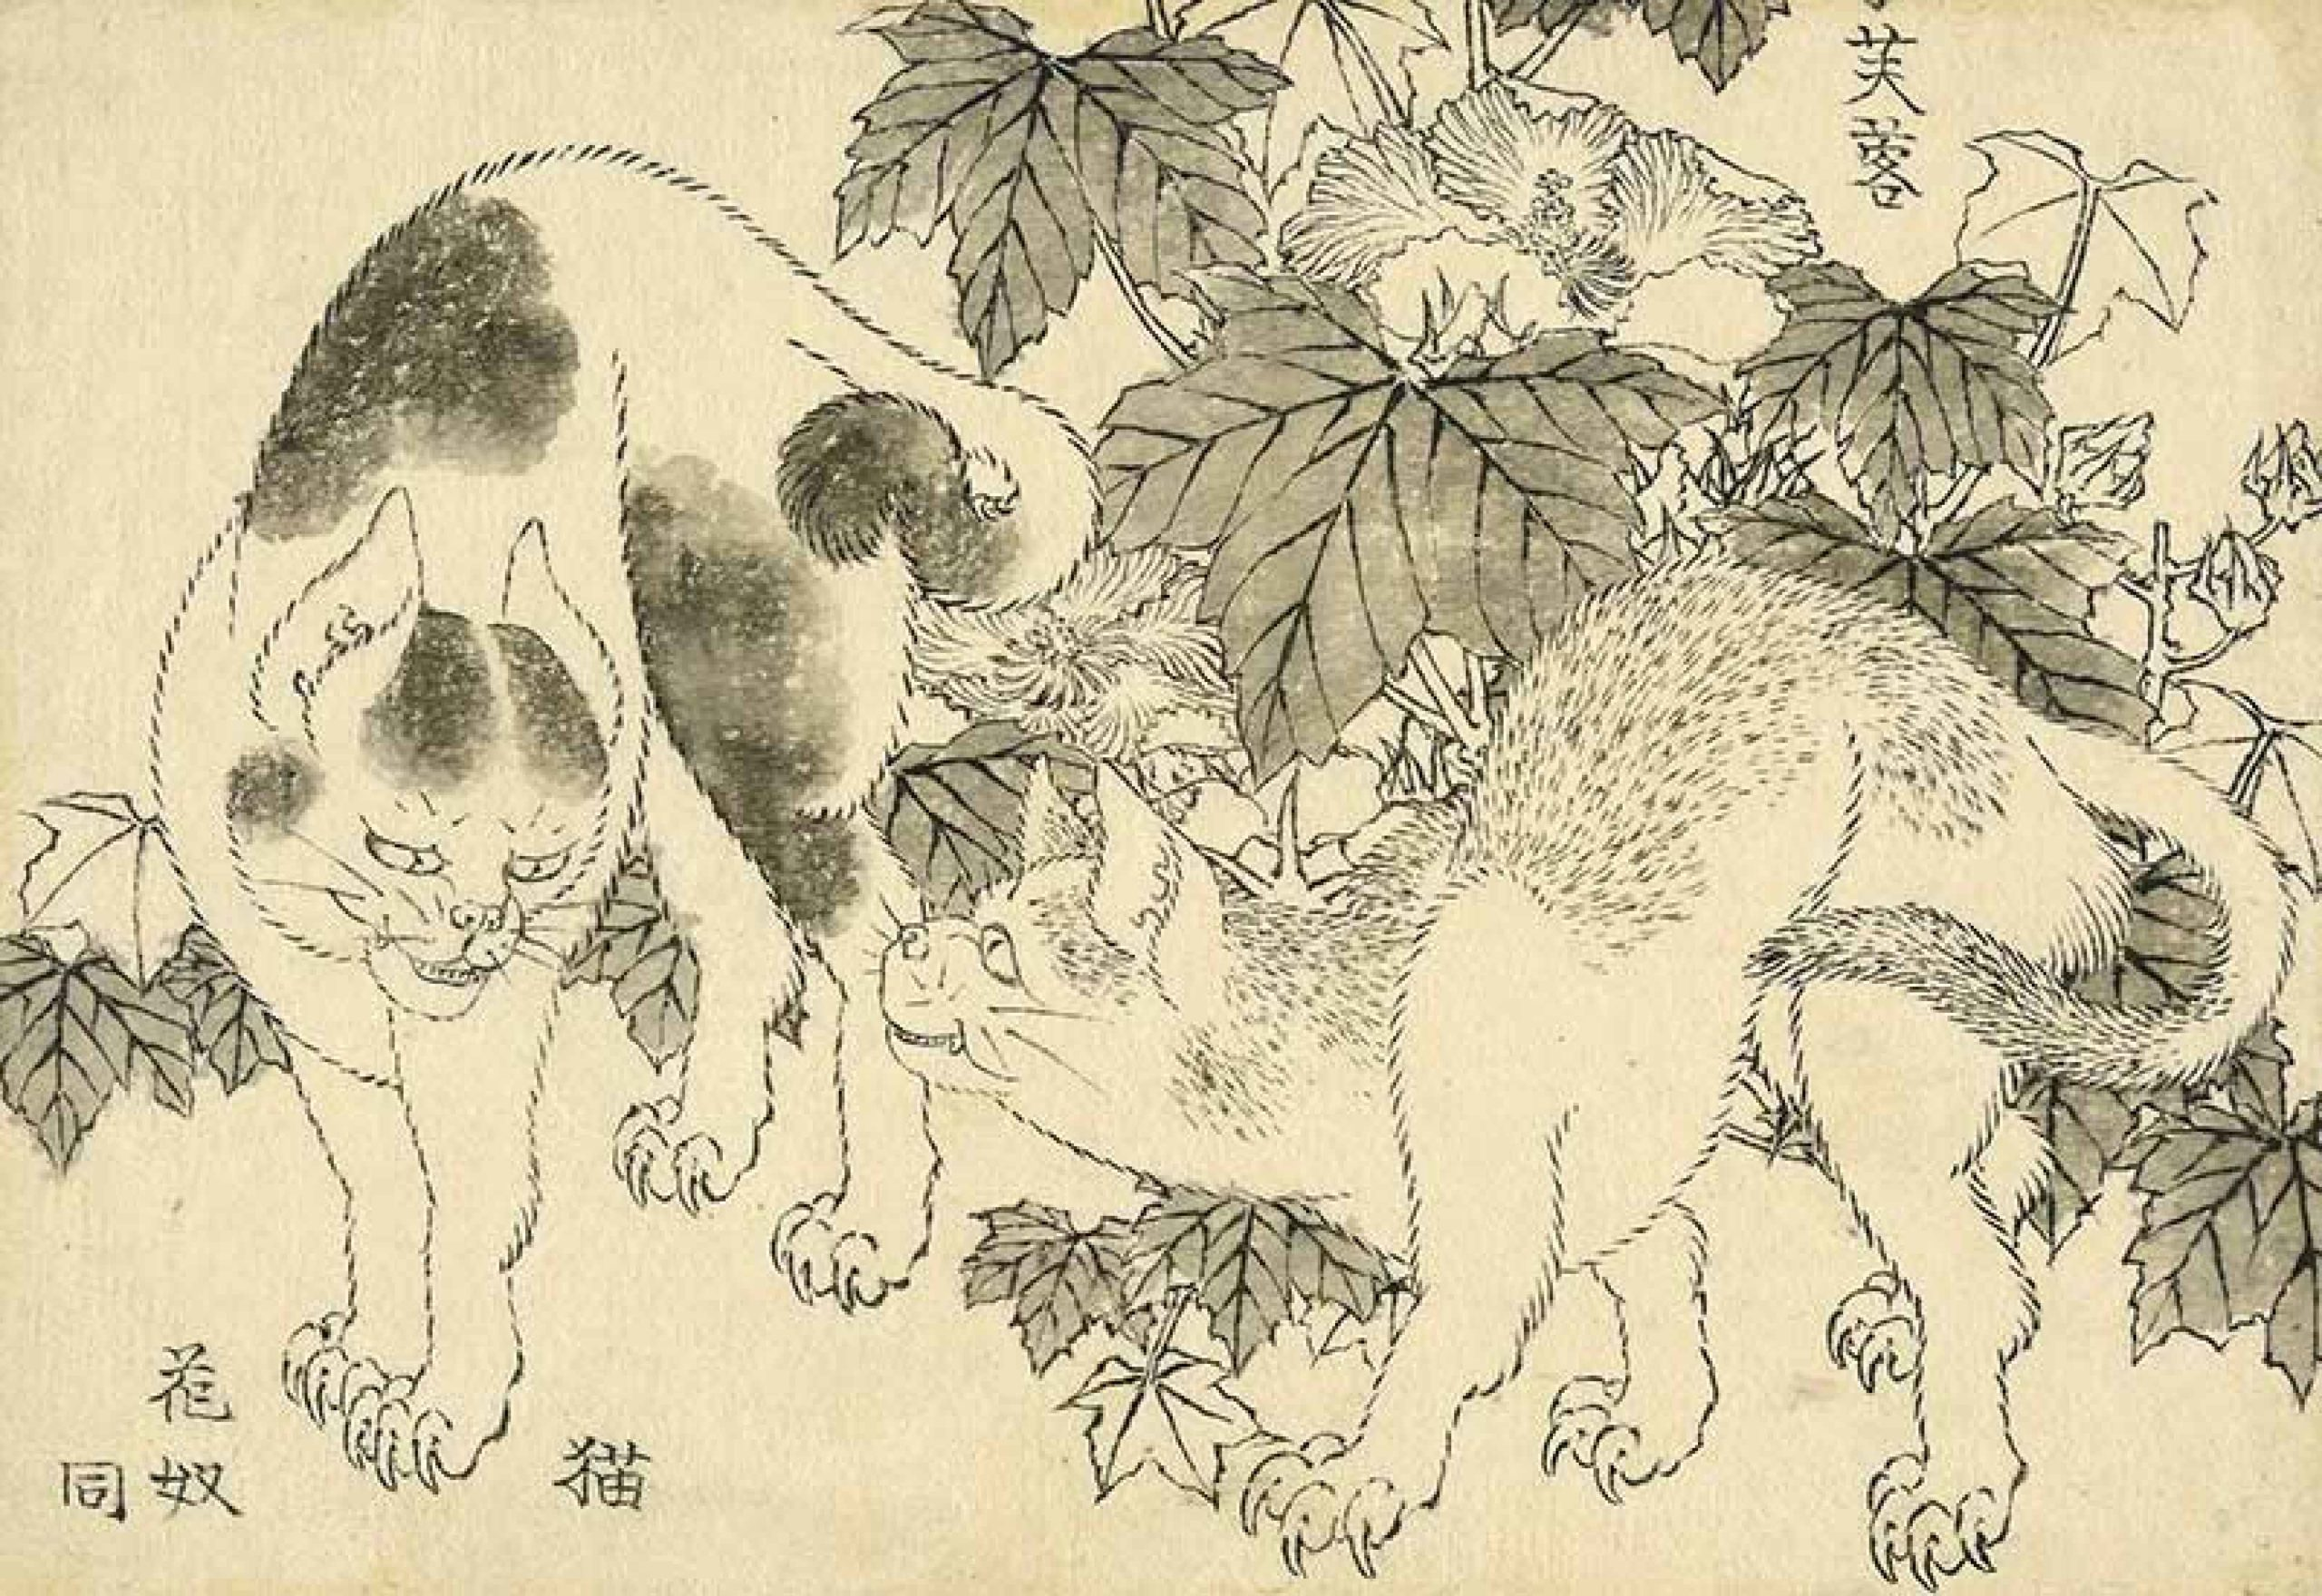 hokusai-chats-et-hibiscus-1829-c-the-trustees-of-the-british-museum-arts-in-the-city-3200×0-1